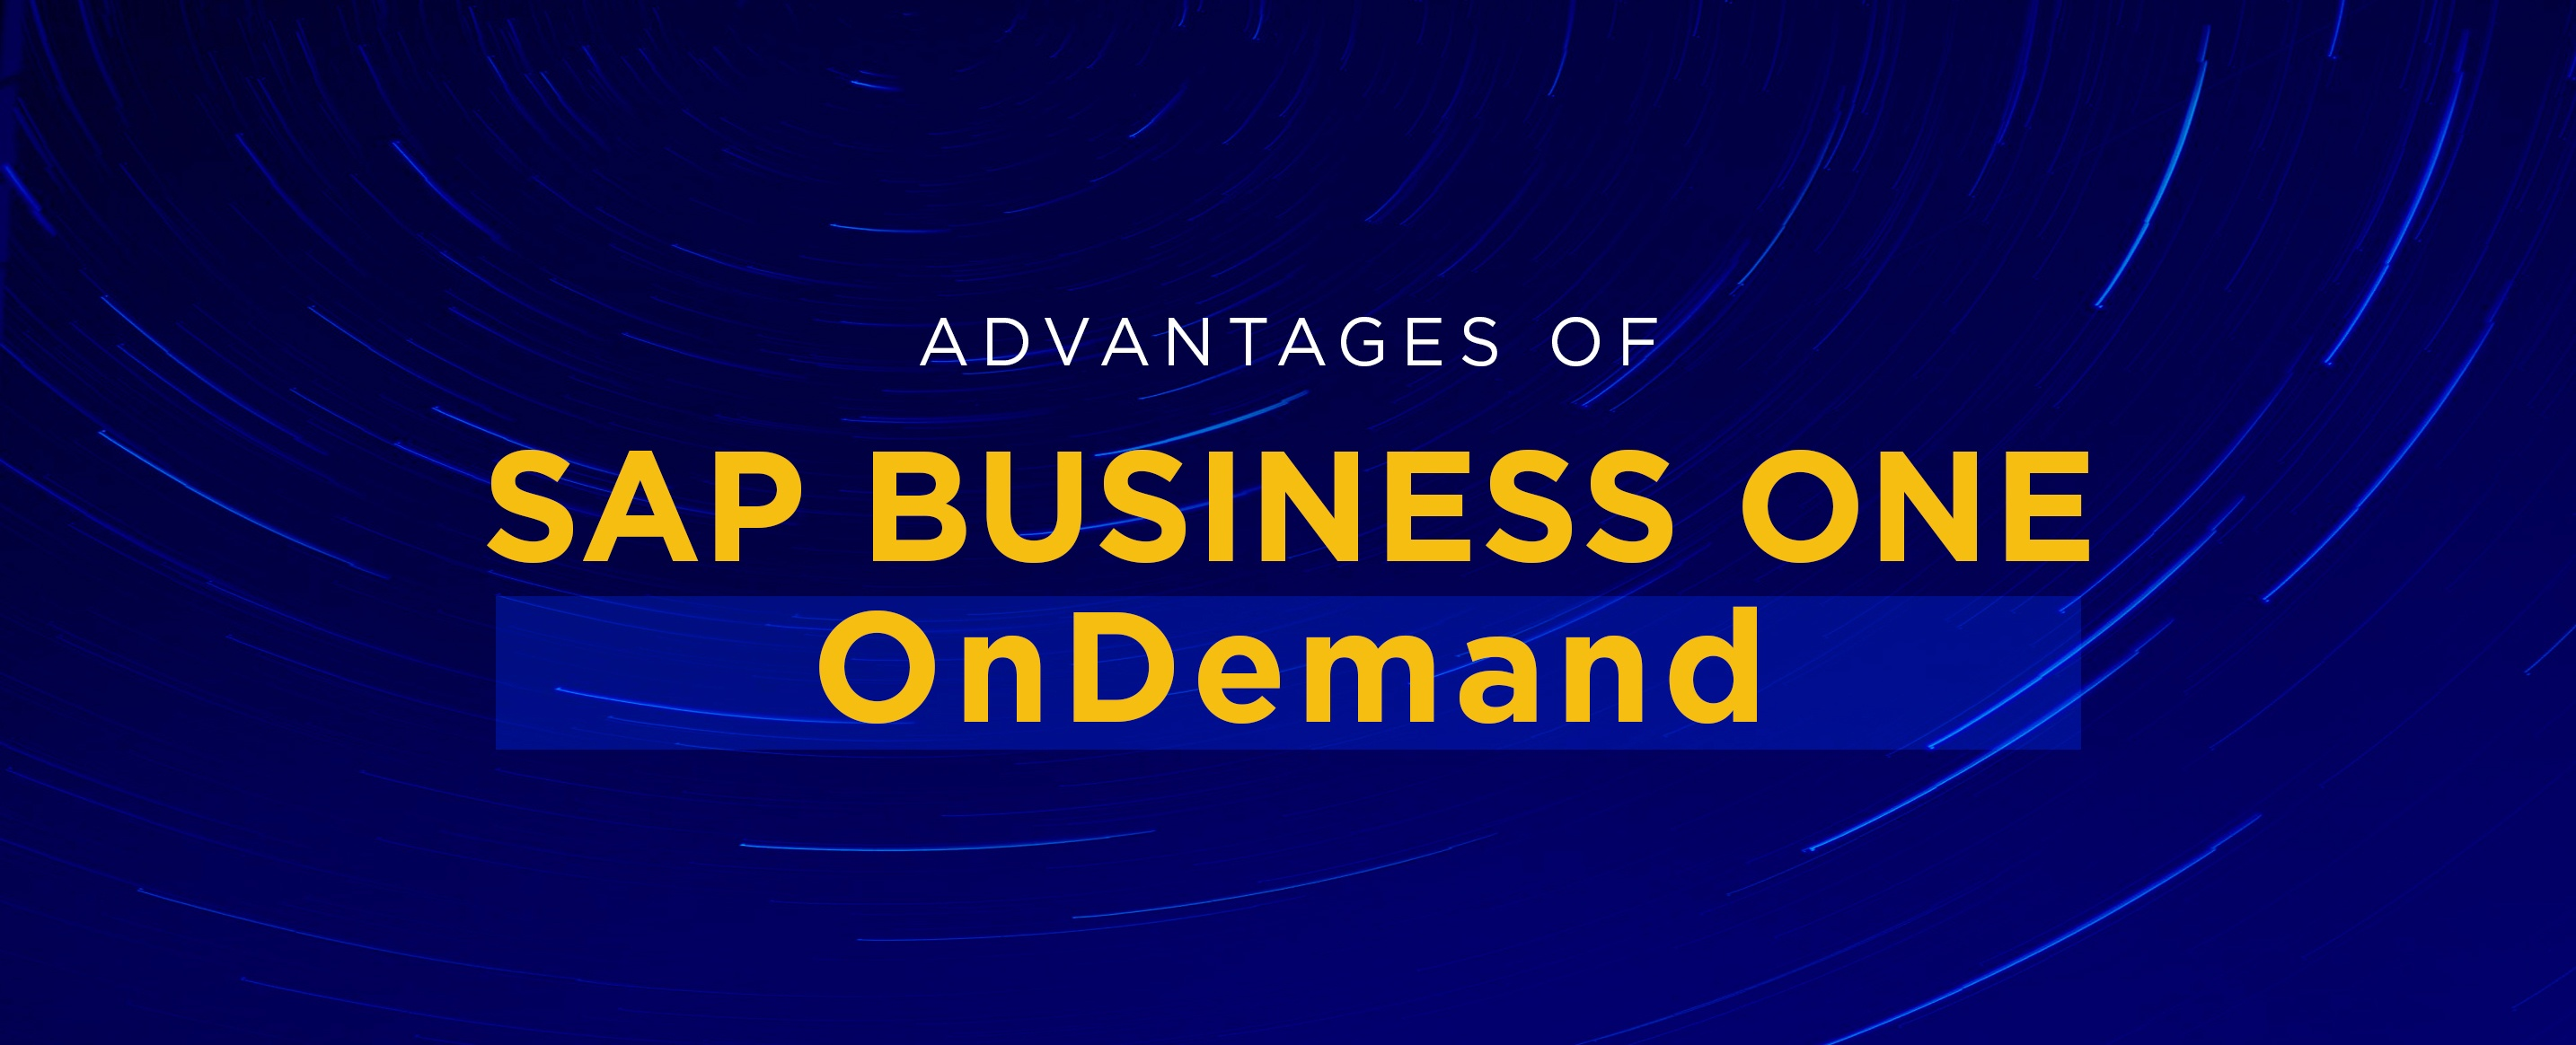 Advantages-of-SAP-Business-One-OnDemand